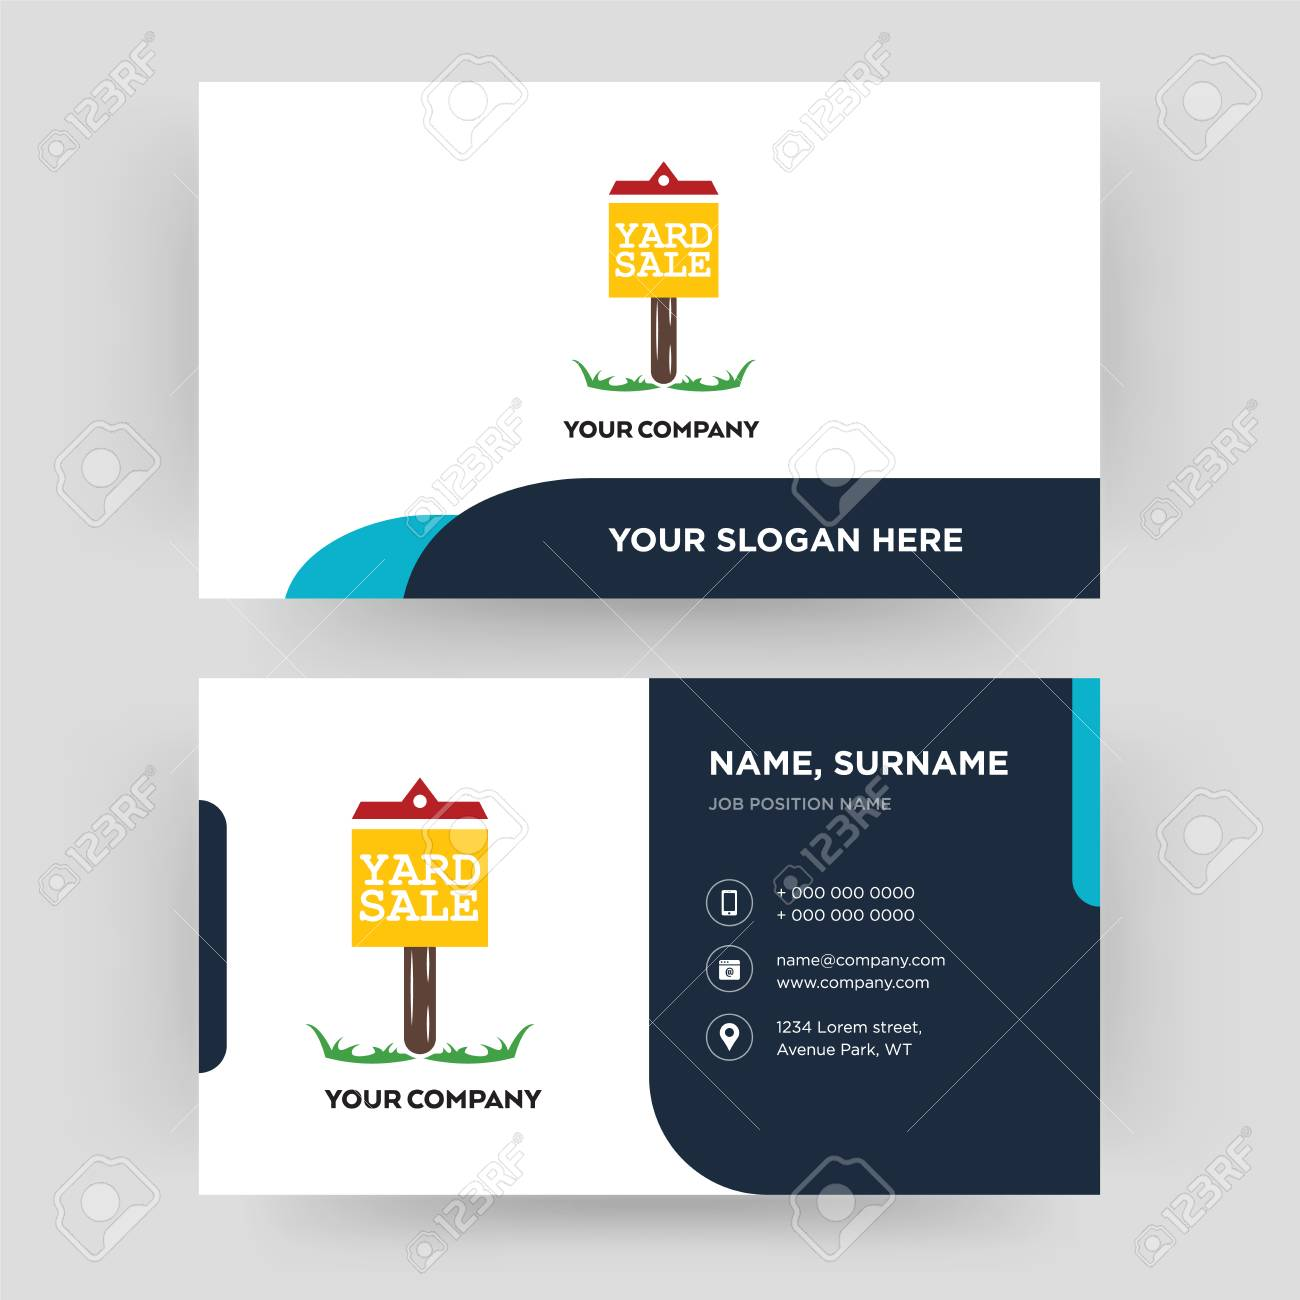 yard sale business card design template visiting for your company